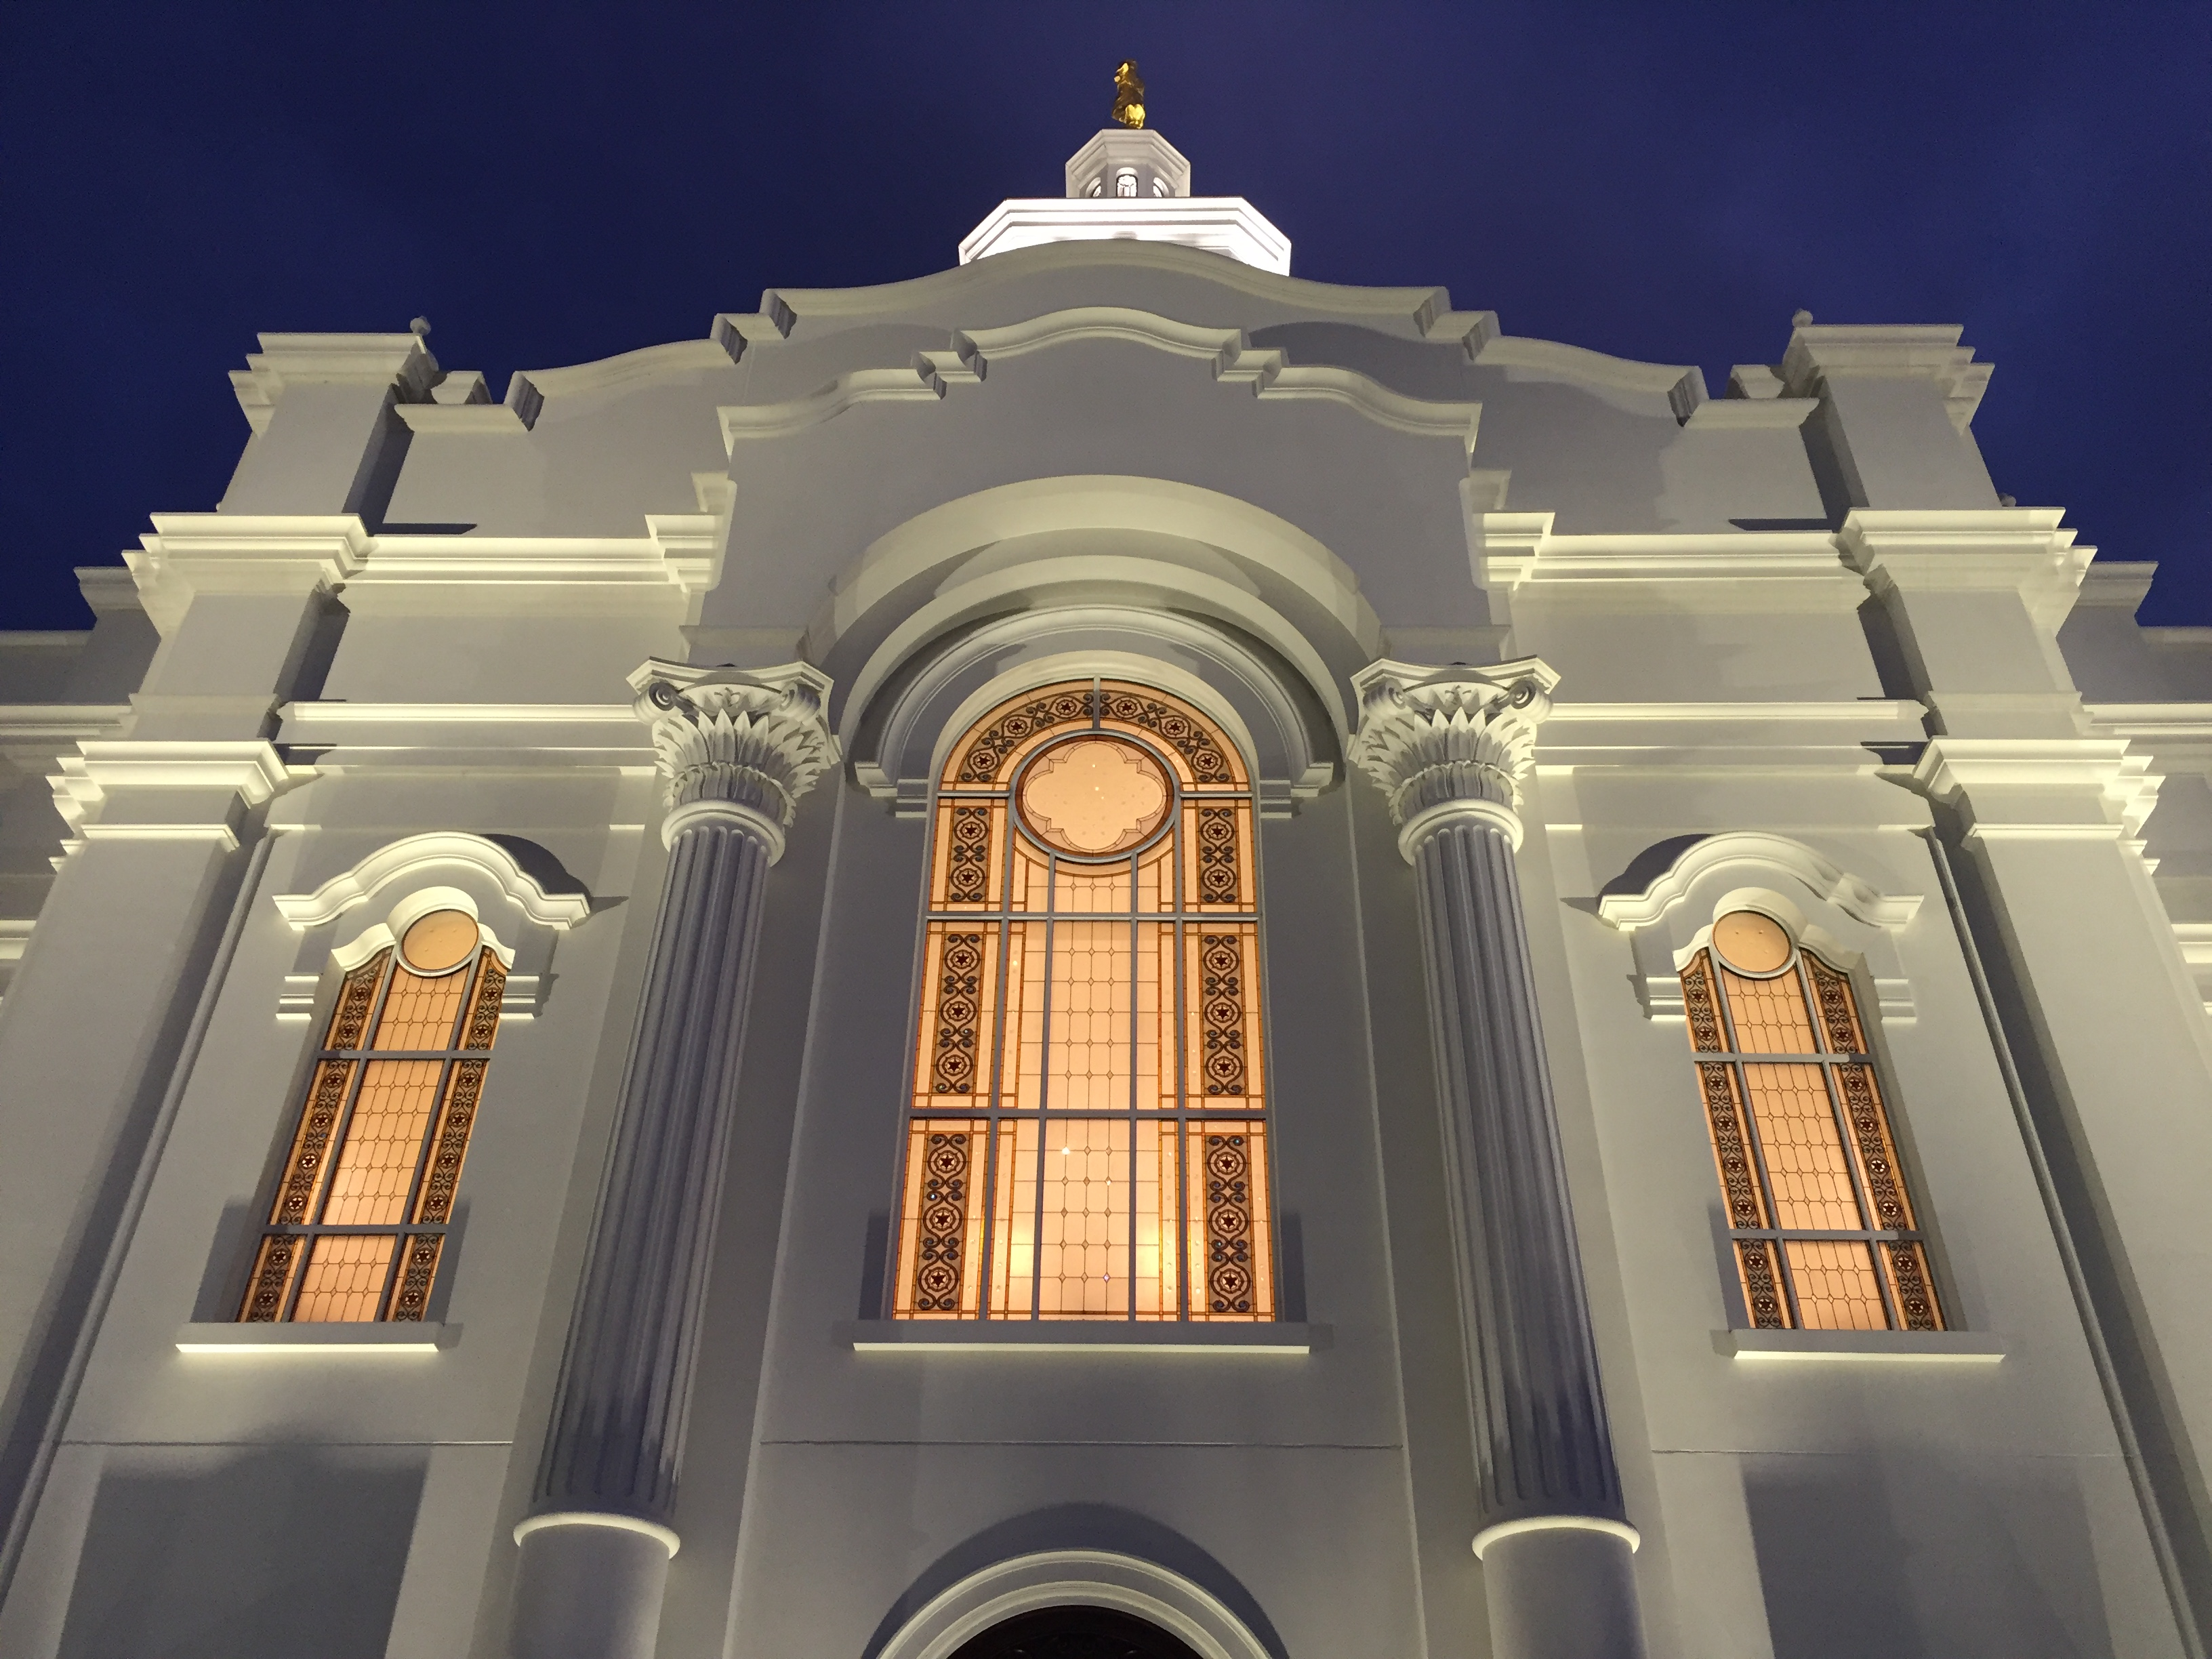 An exterior view of the windows to the celestial room of the Tijuana Mexico Temple.